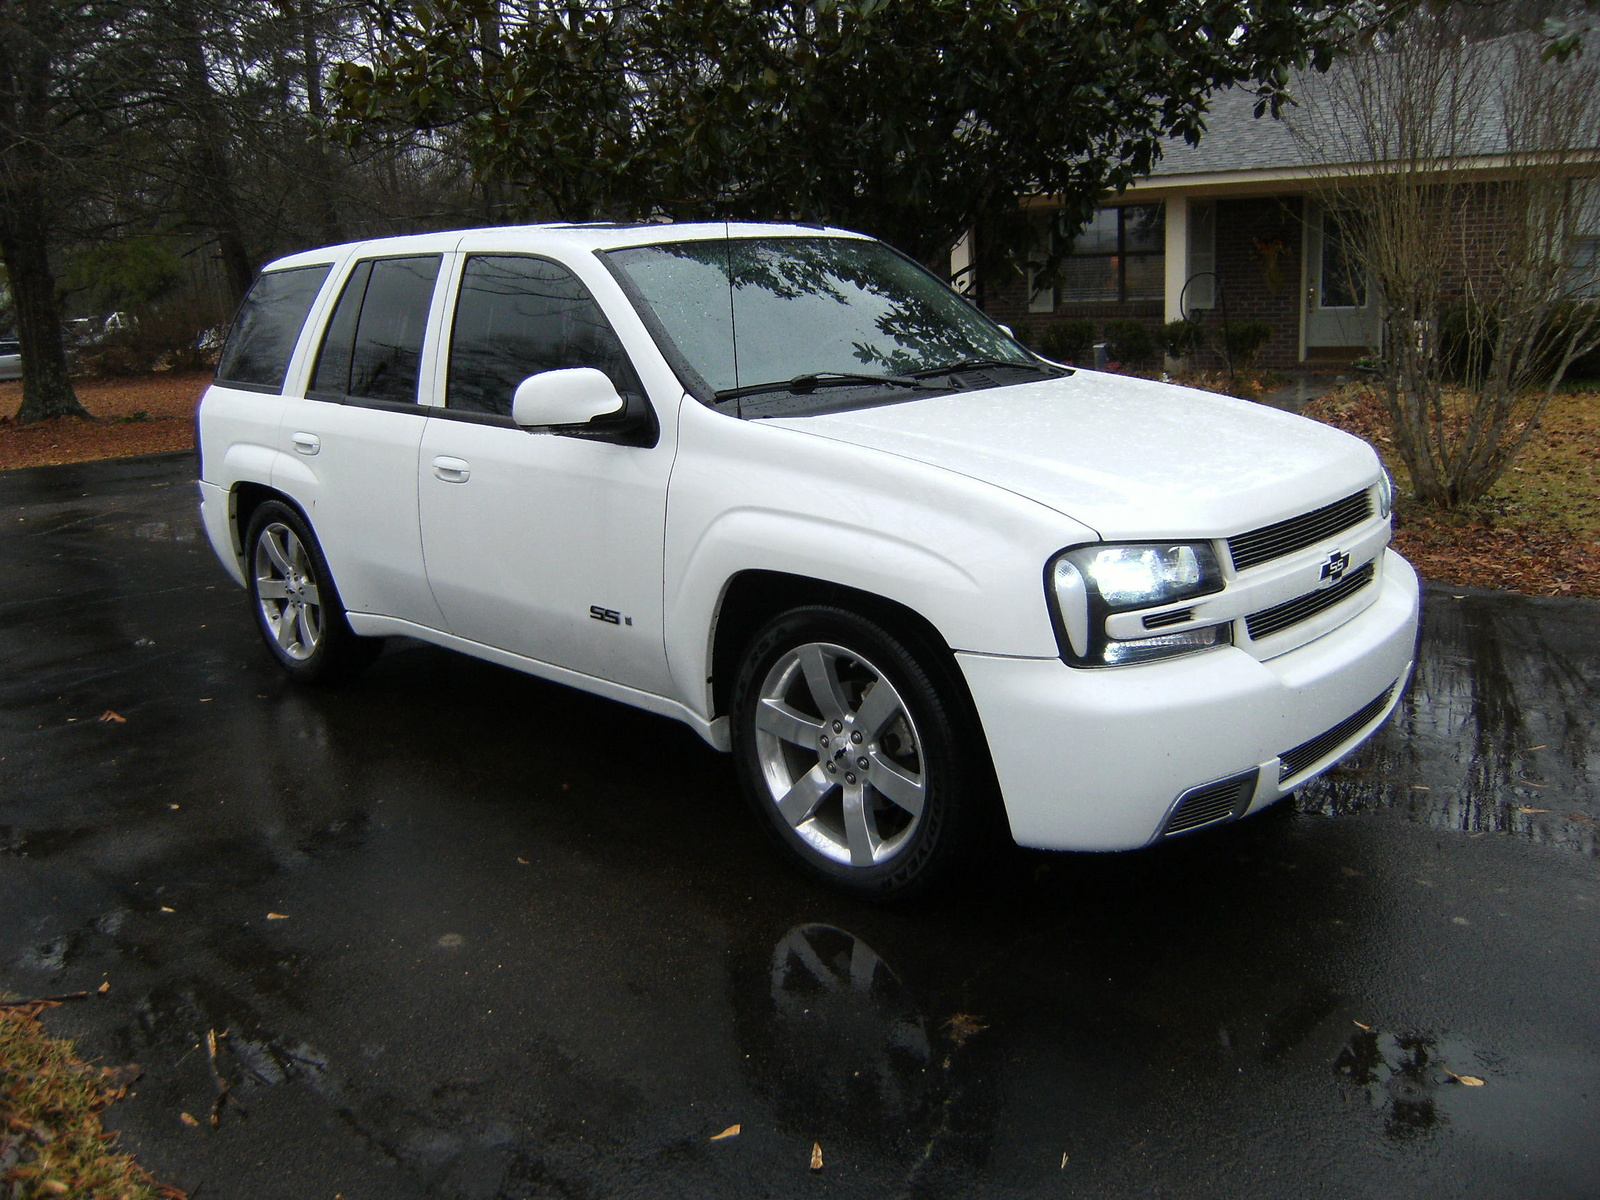 2007 Chevrolet TrailBlazer SS3 picture